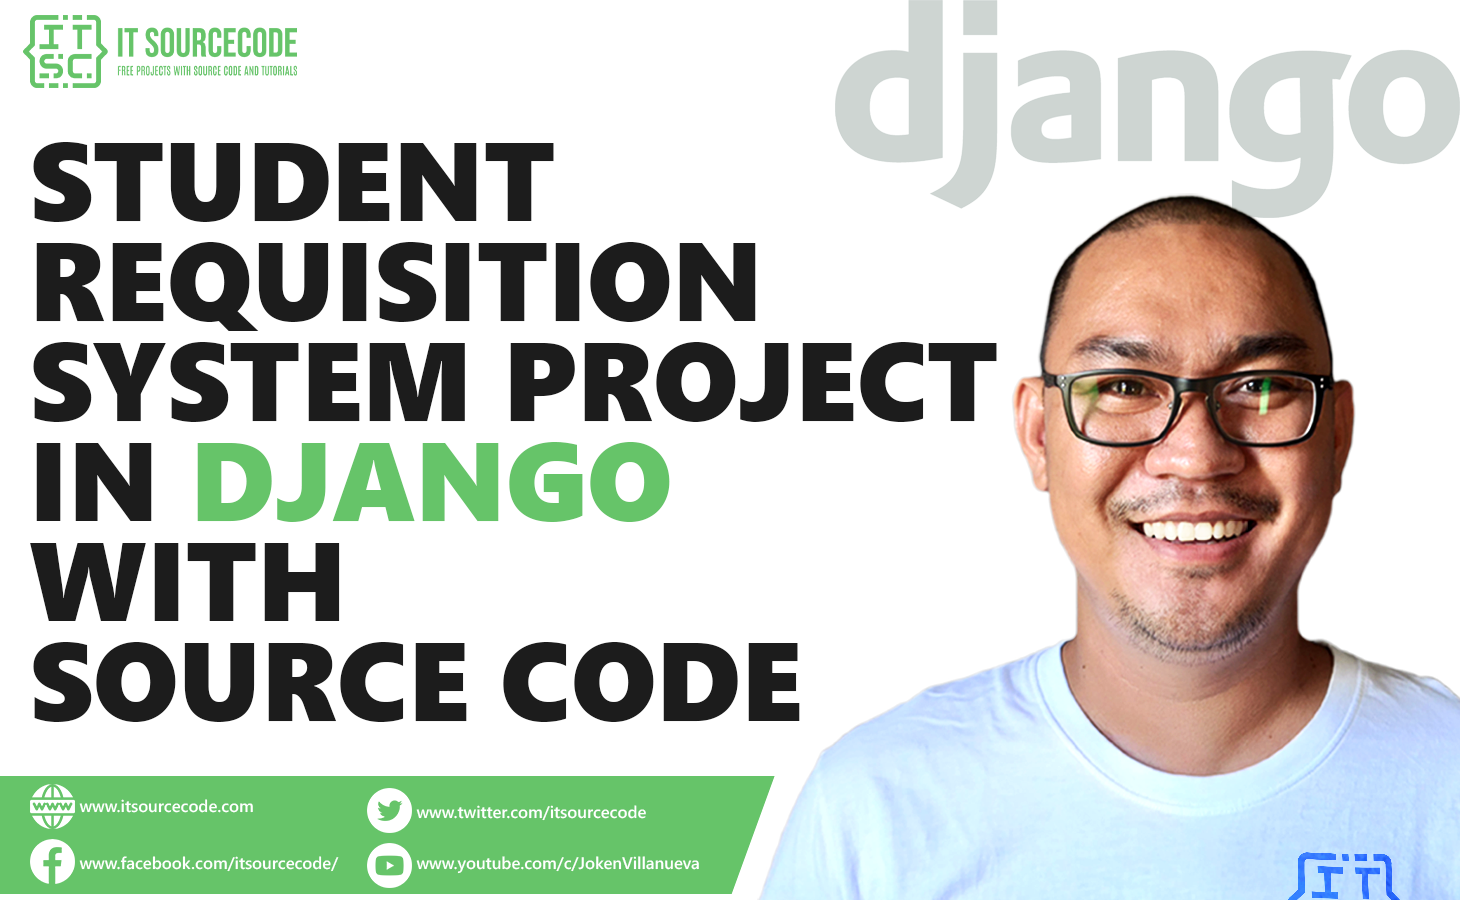 Student Requisition System Project in Django with Source Code